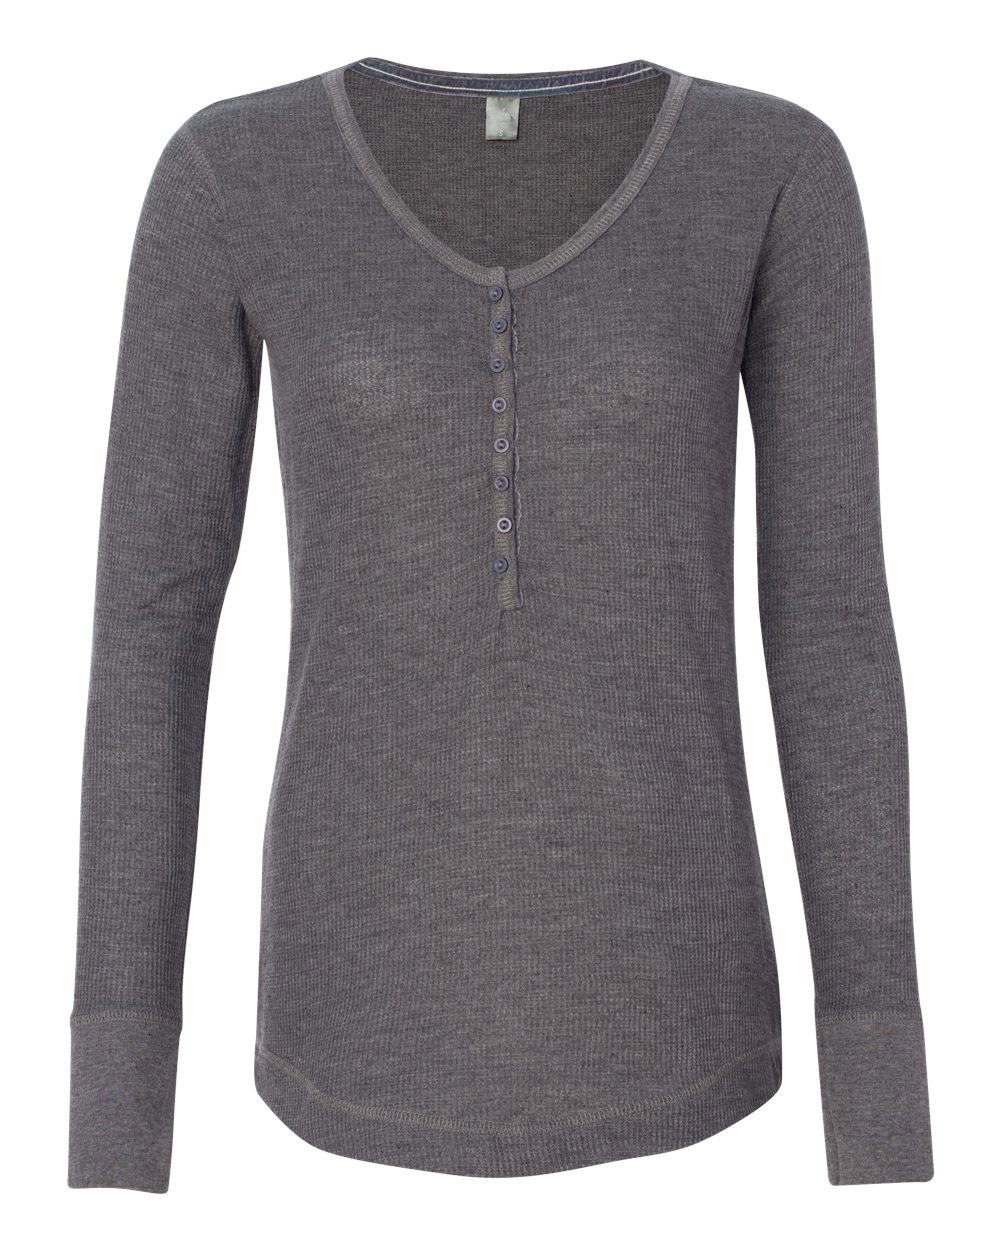 J. America - Ladies Thermal Henley